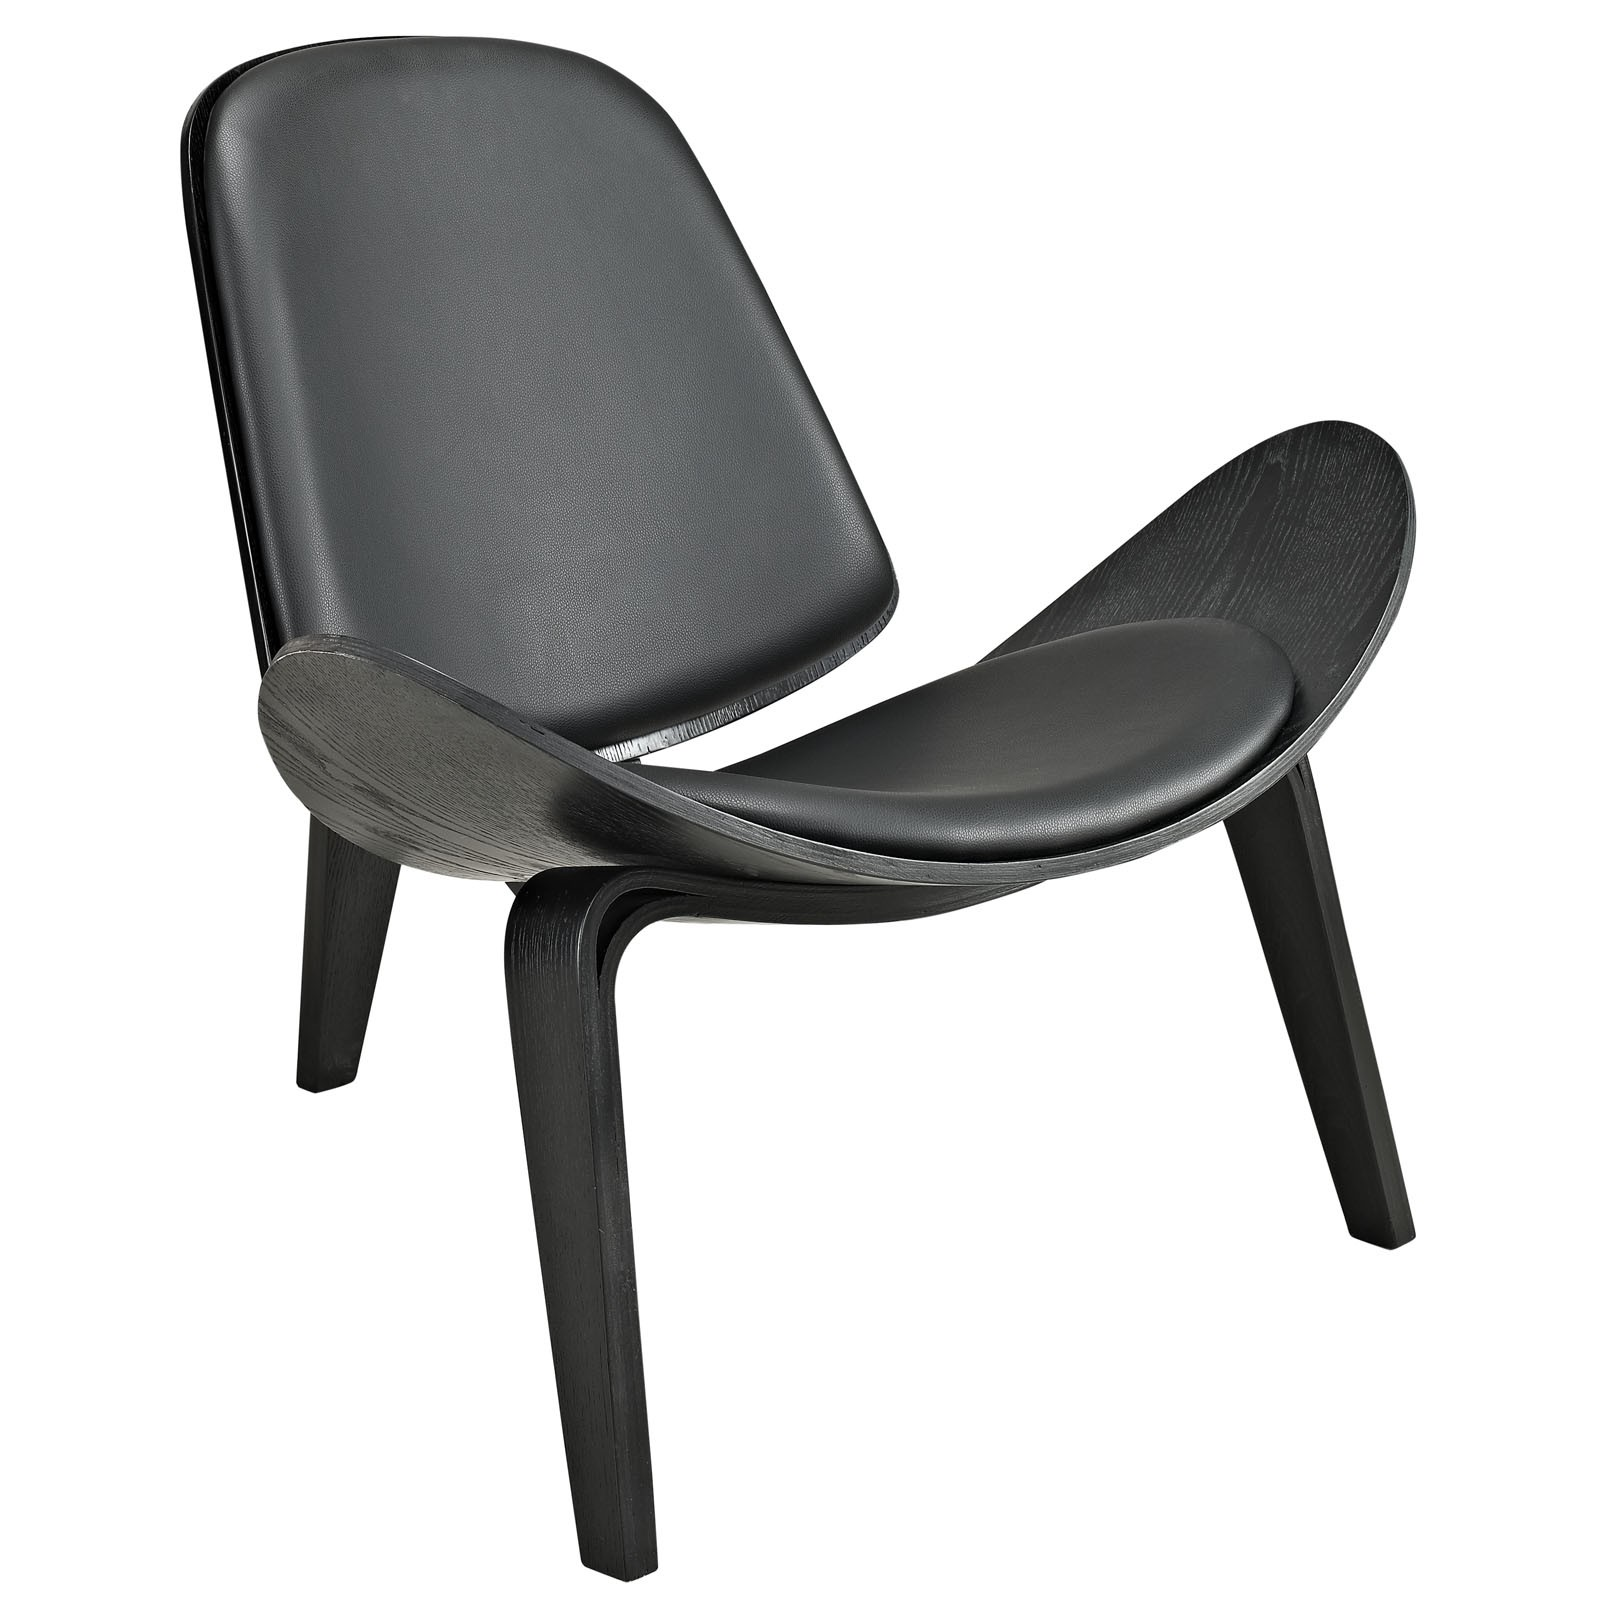 Arch Vinyl Lounge Chair-Black Black